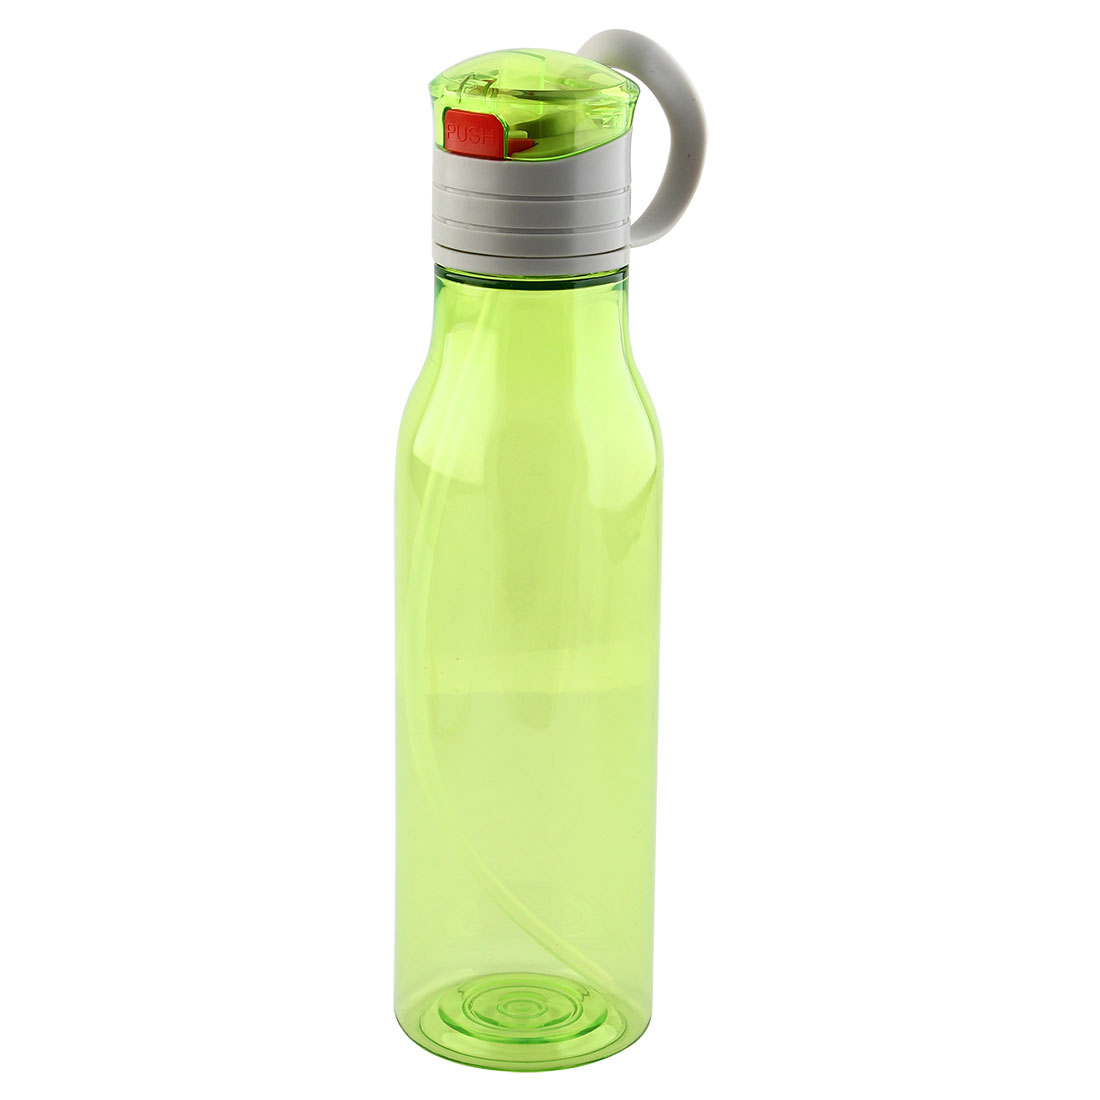 Outdoor Sports Plastic Straw Water Bottle Portable Fruit Juice Mug Biking Canteen Hiking Kettle Green 570ml